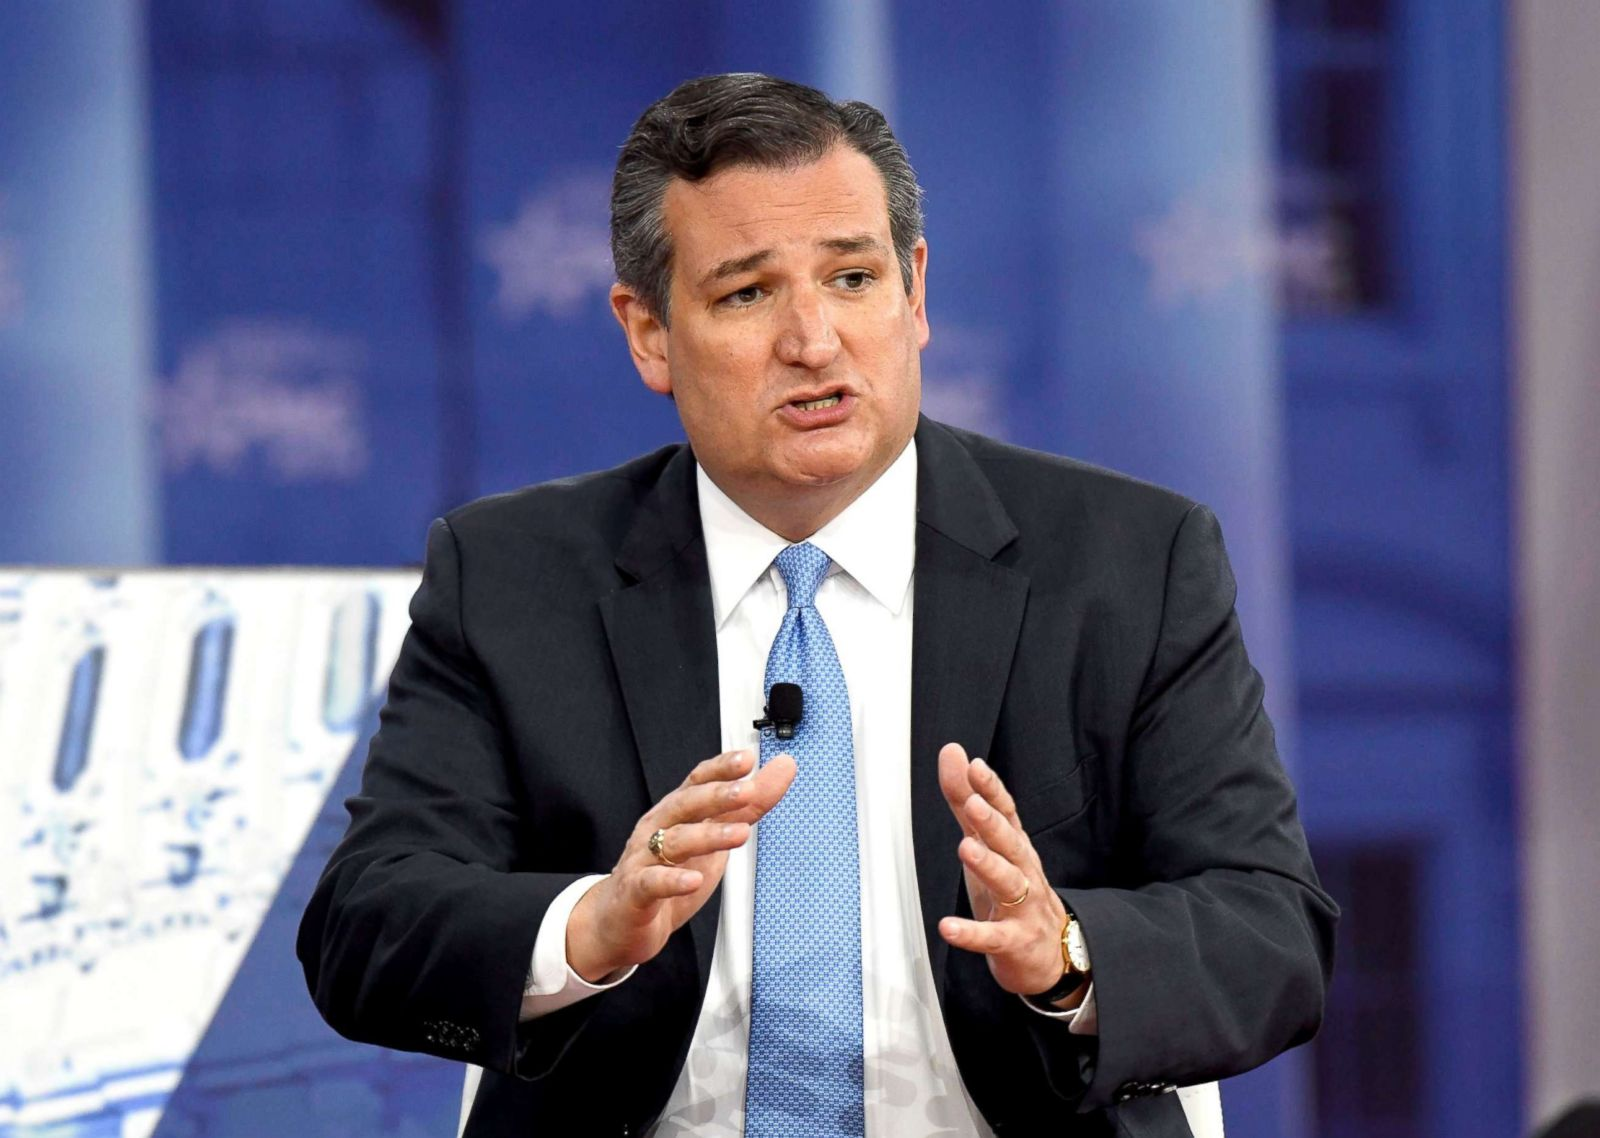 cruz tries to start beef says democrats will ban barbecue in